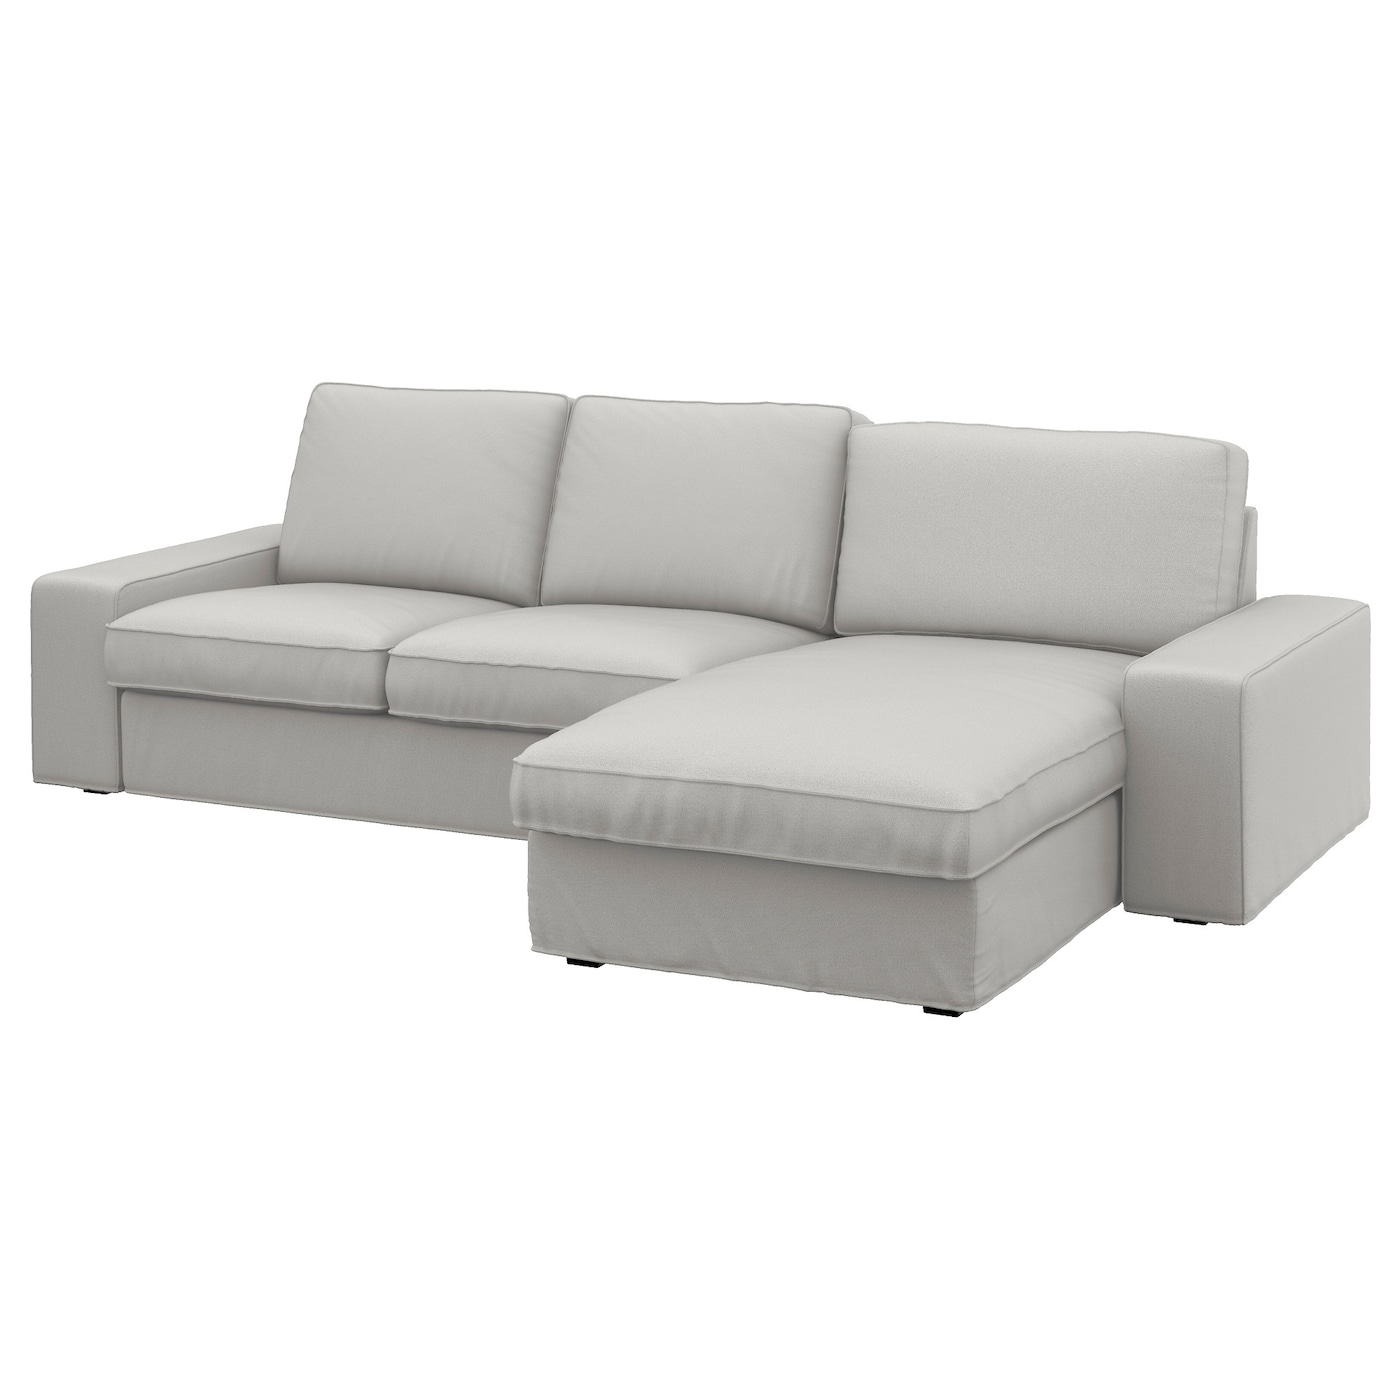 kivik 3 seat sofa with chaise longue ramna light grey ikea. Black Bedroom Furniture Sets. Home Design Ideas